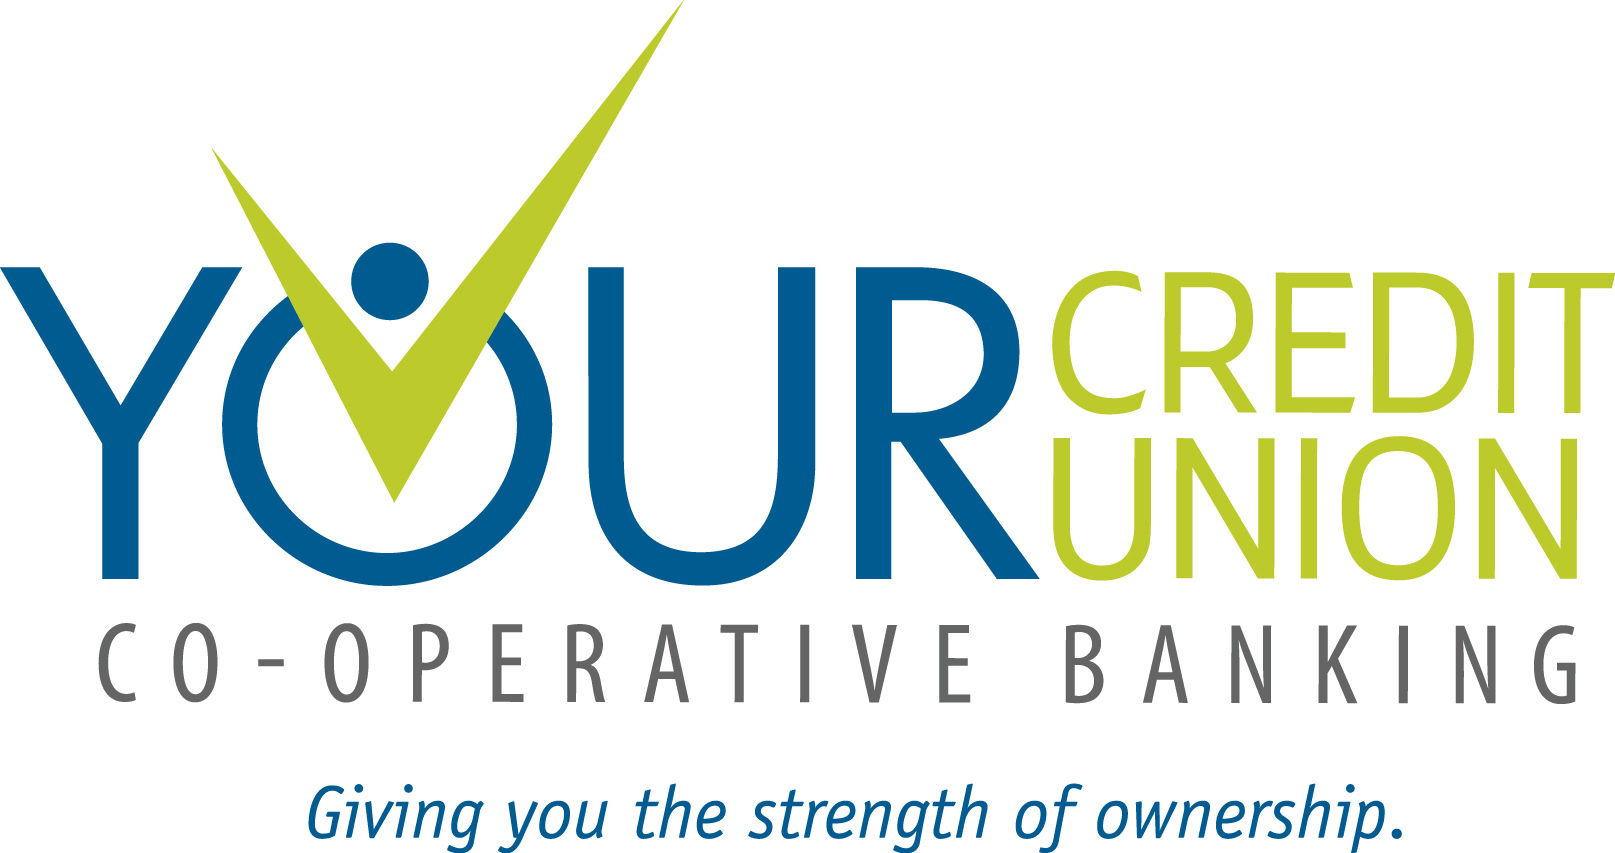 Your Credit Union Co-operative Banking logo